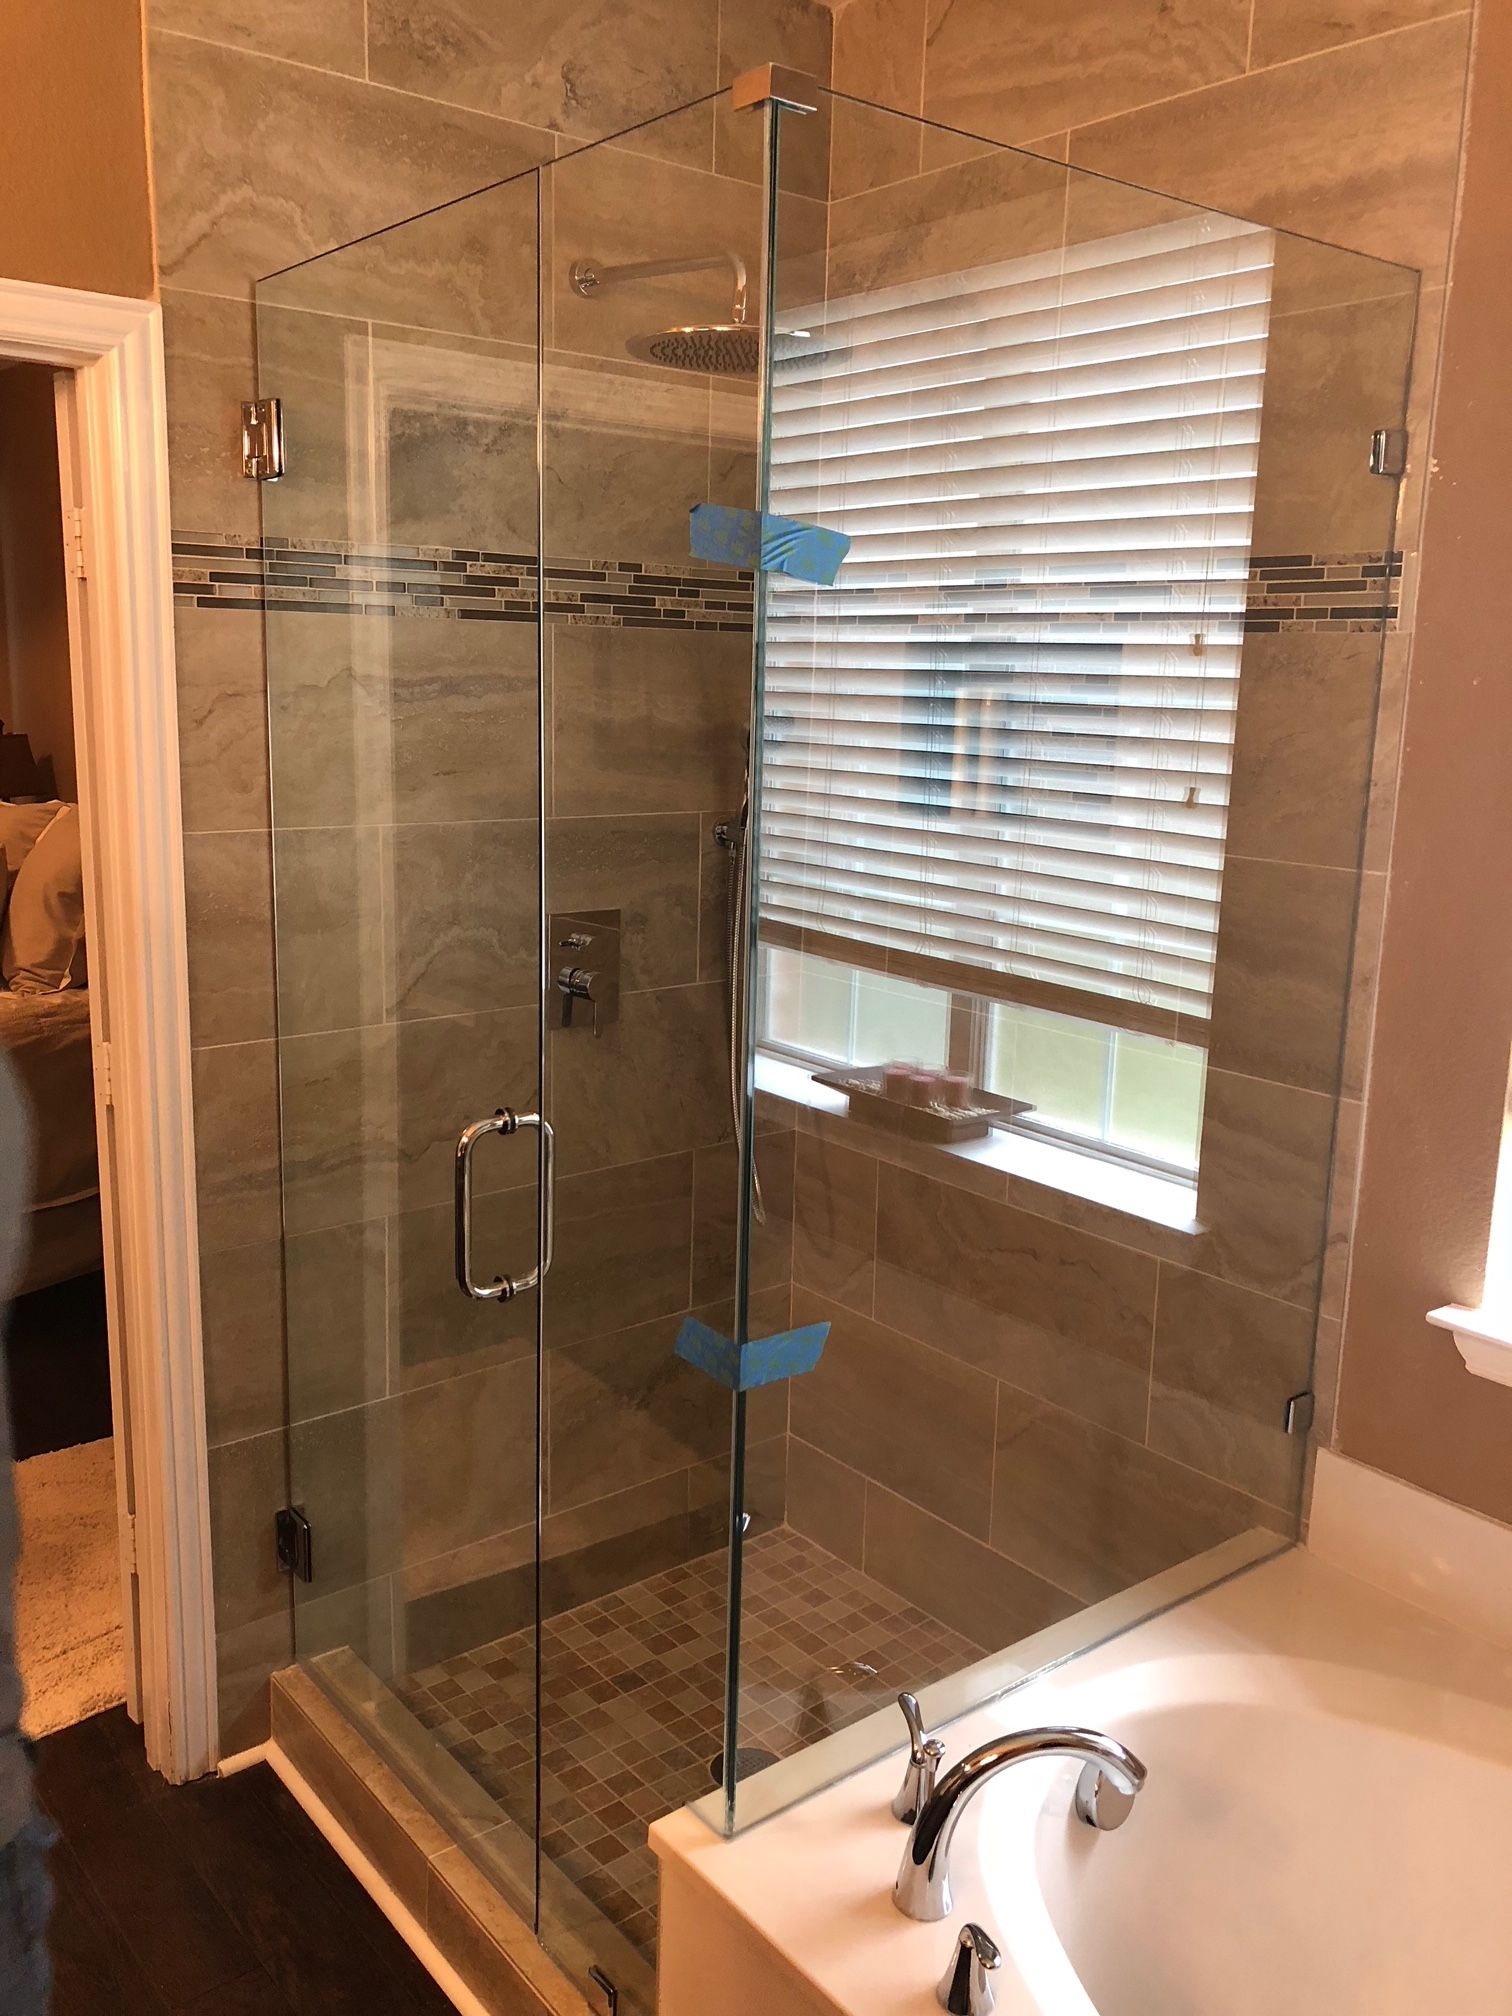 Dallas Bath & Glass | Welcome to Dallas Bath & Glass